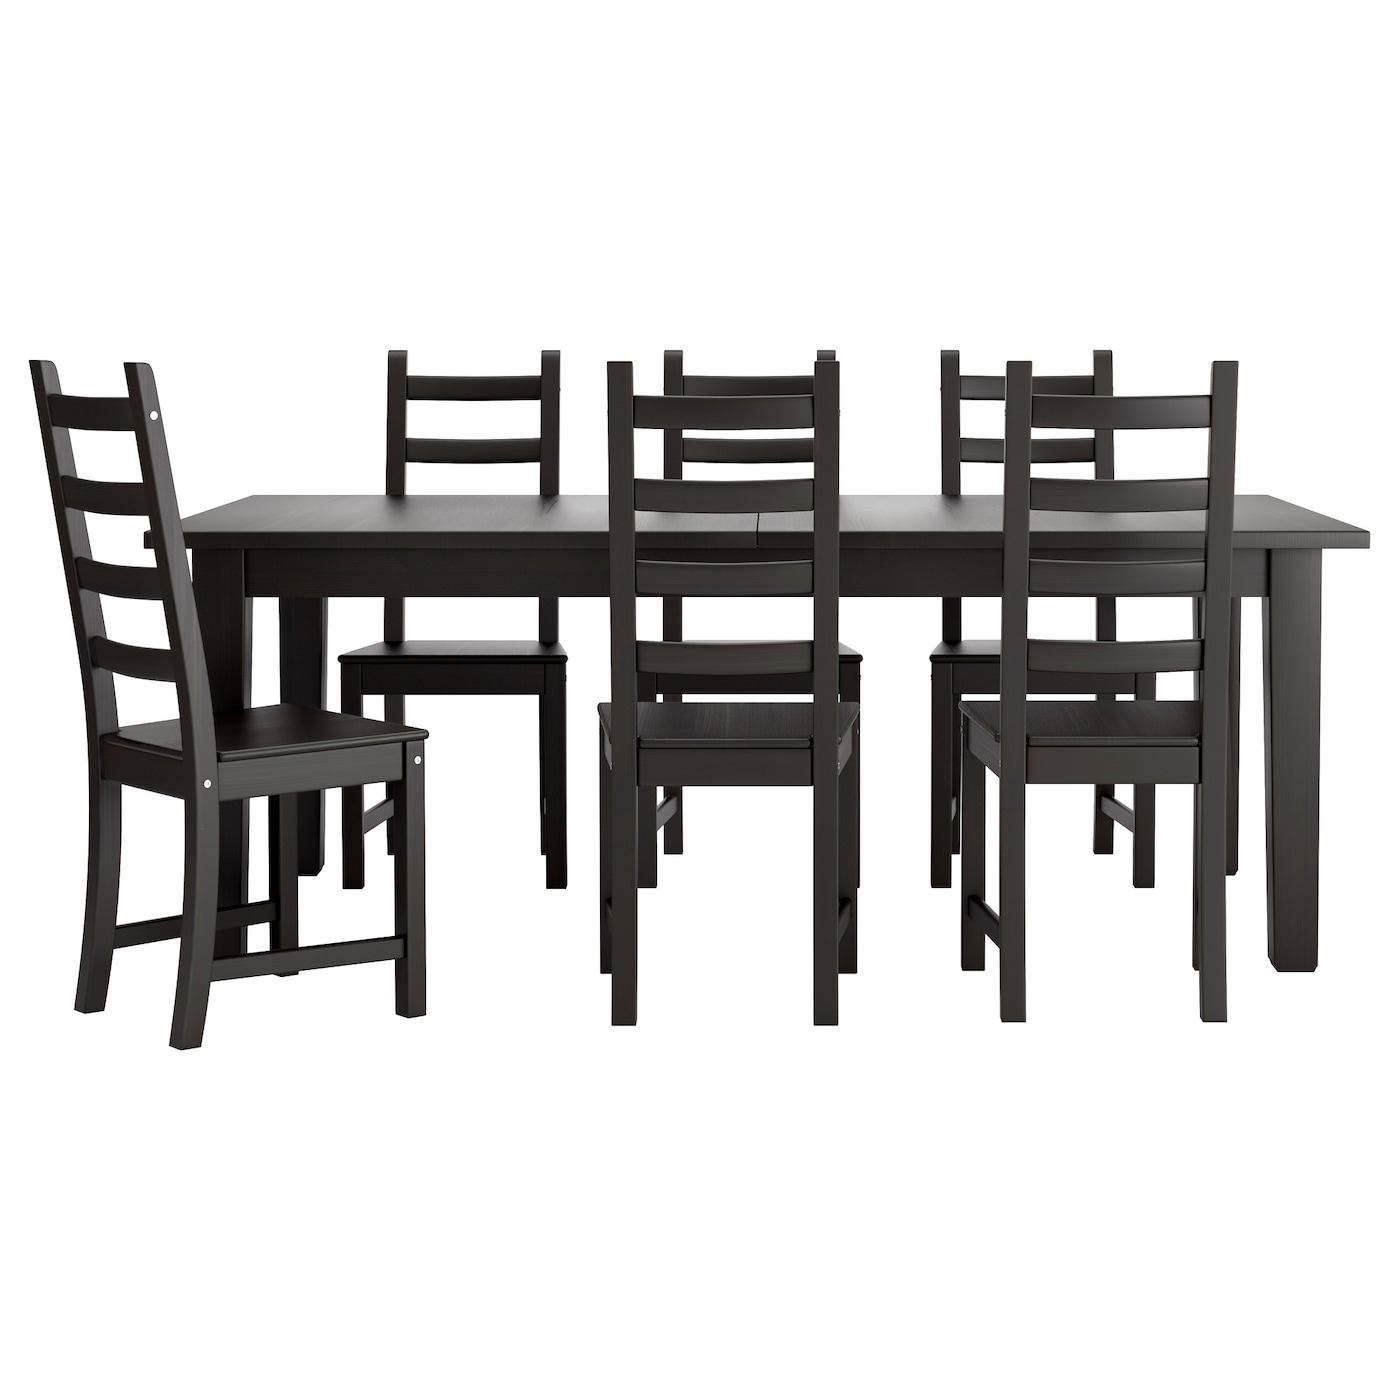 kaustby storn s table et 6 chaises brun noir 201 cm ikea. Black Bedroom Furniture Sets. Home Design Ideas